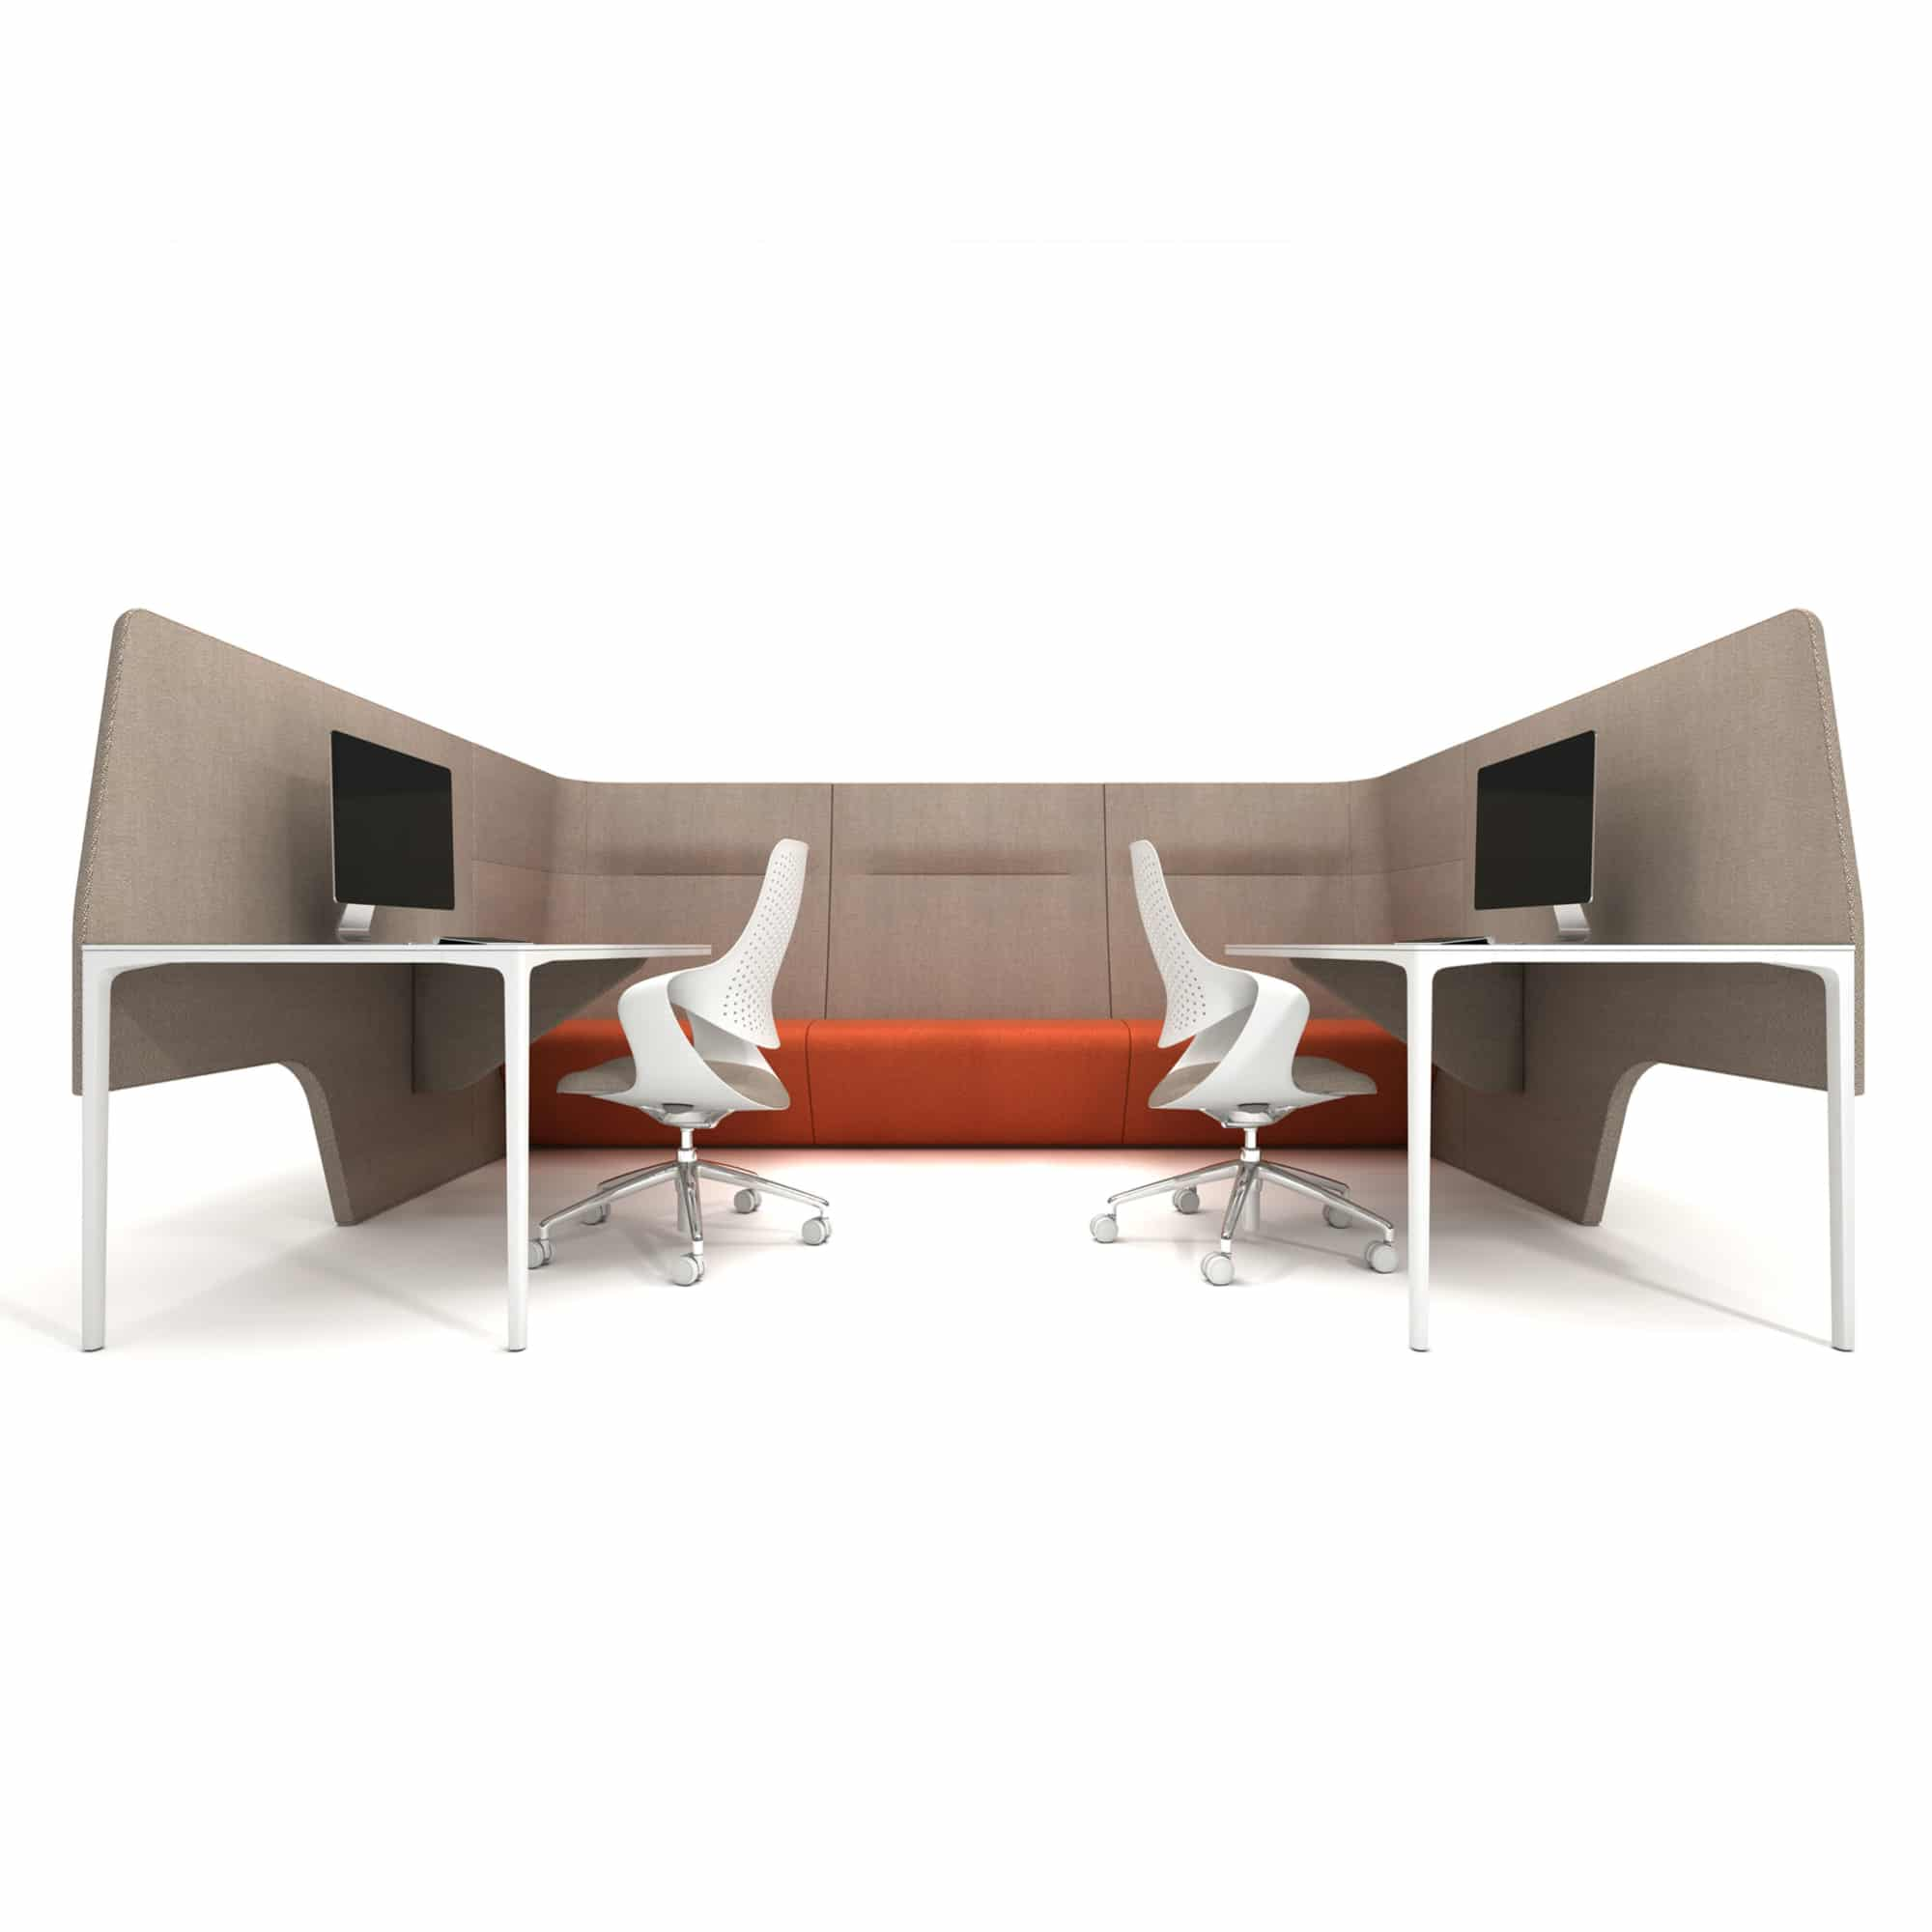 Modern office furniture desk